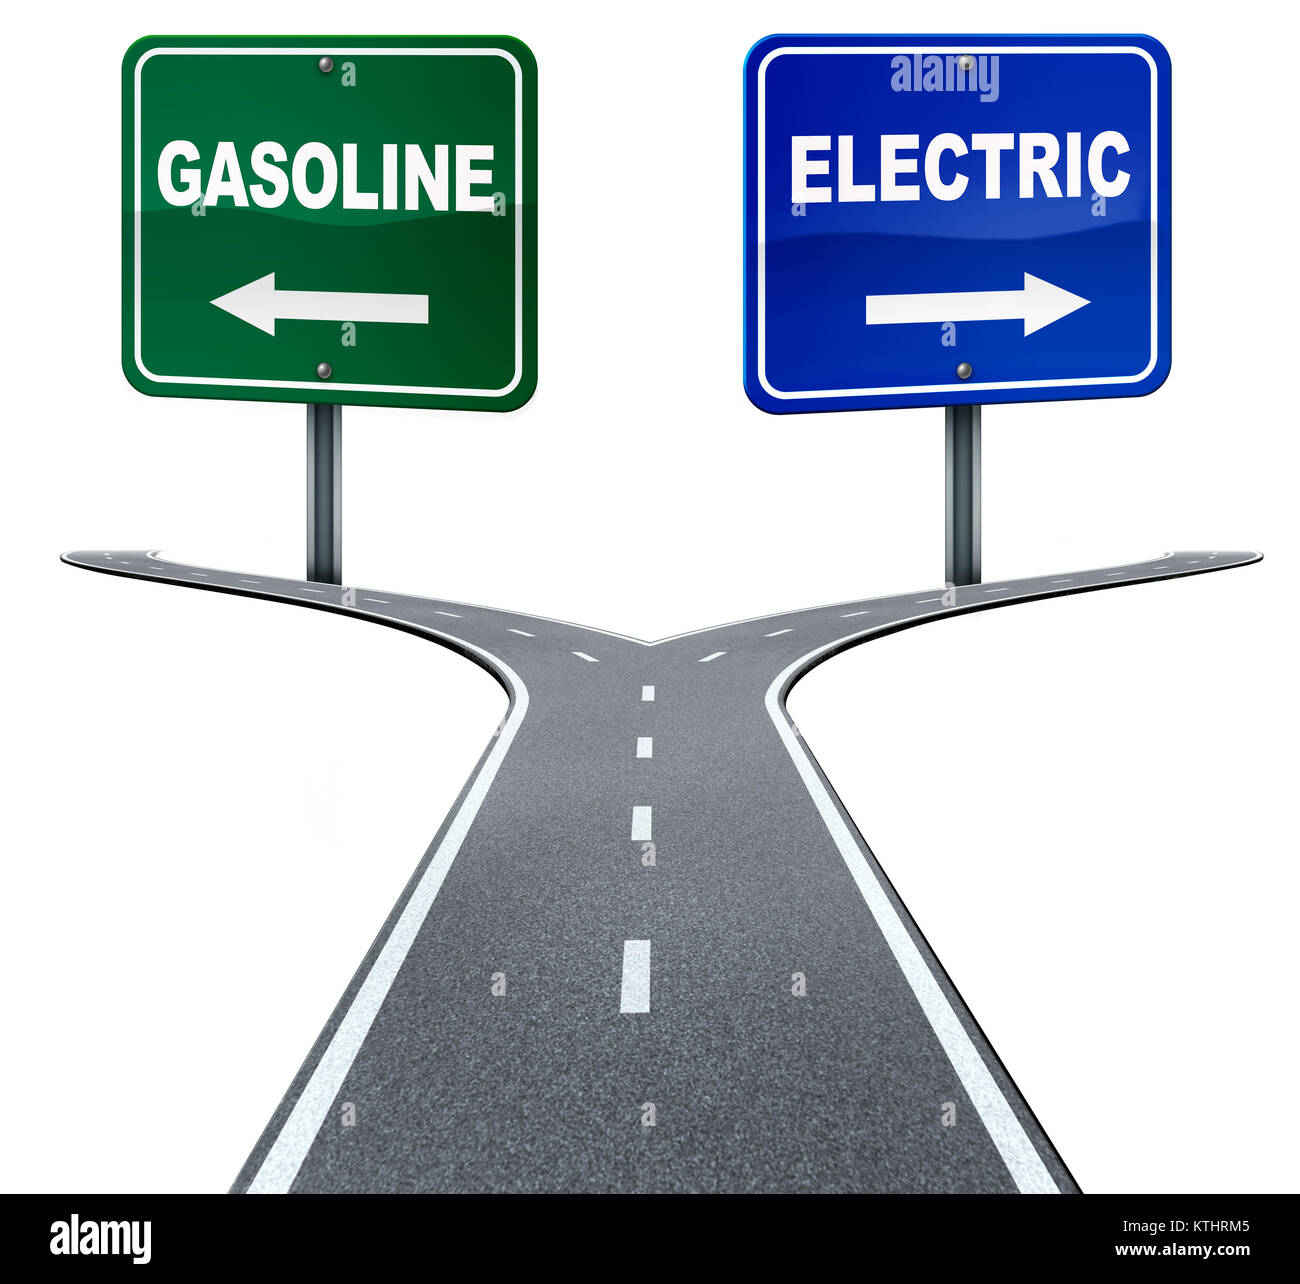 Gasoline and electric energy industry choice concept on a crossroad between old gas fuel power or alternative battery - Stock Image